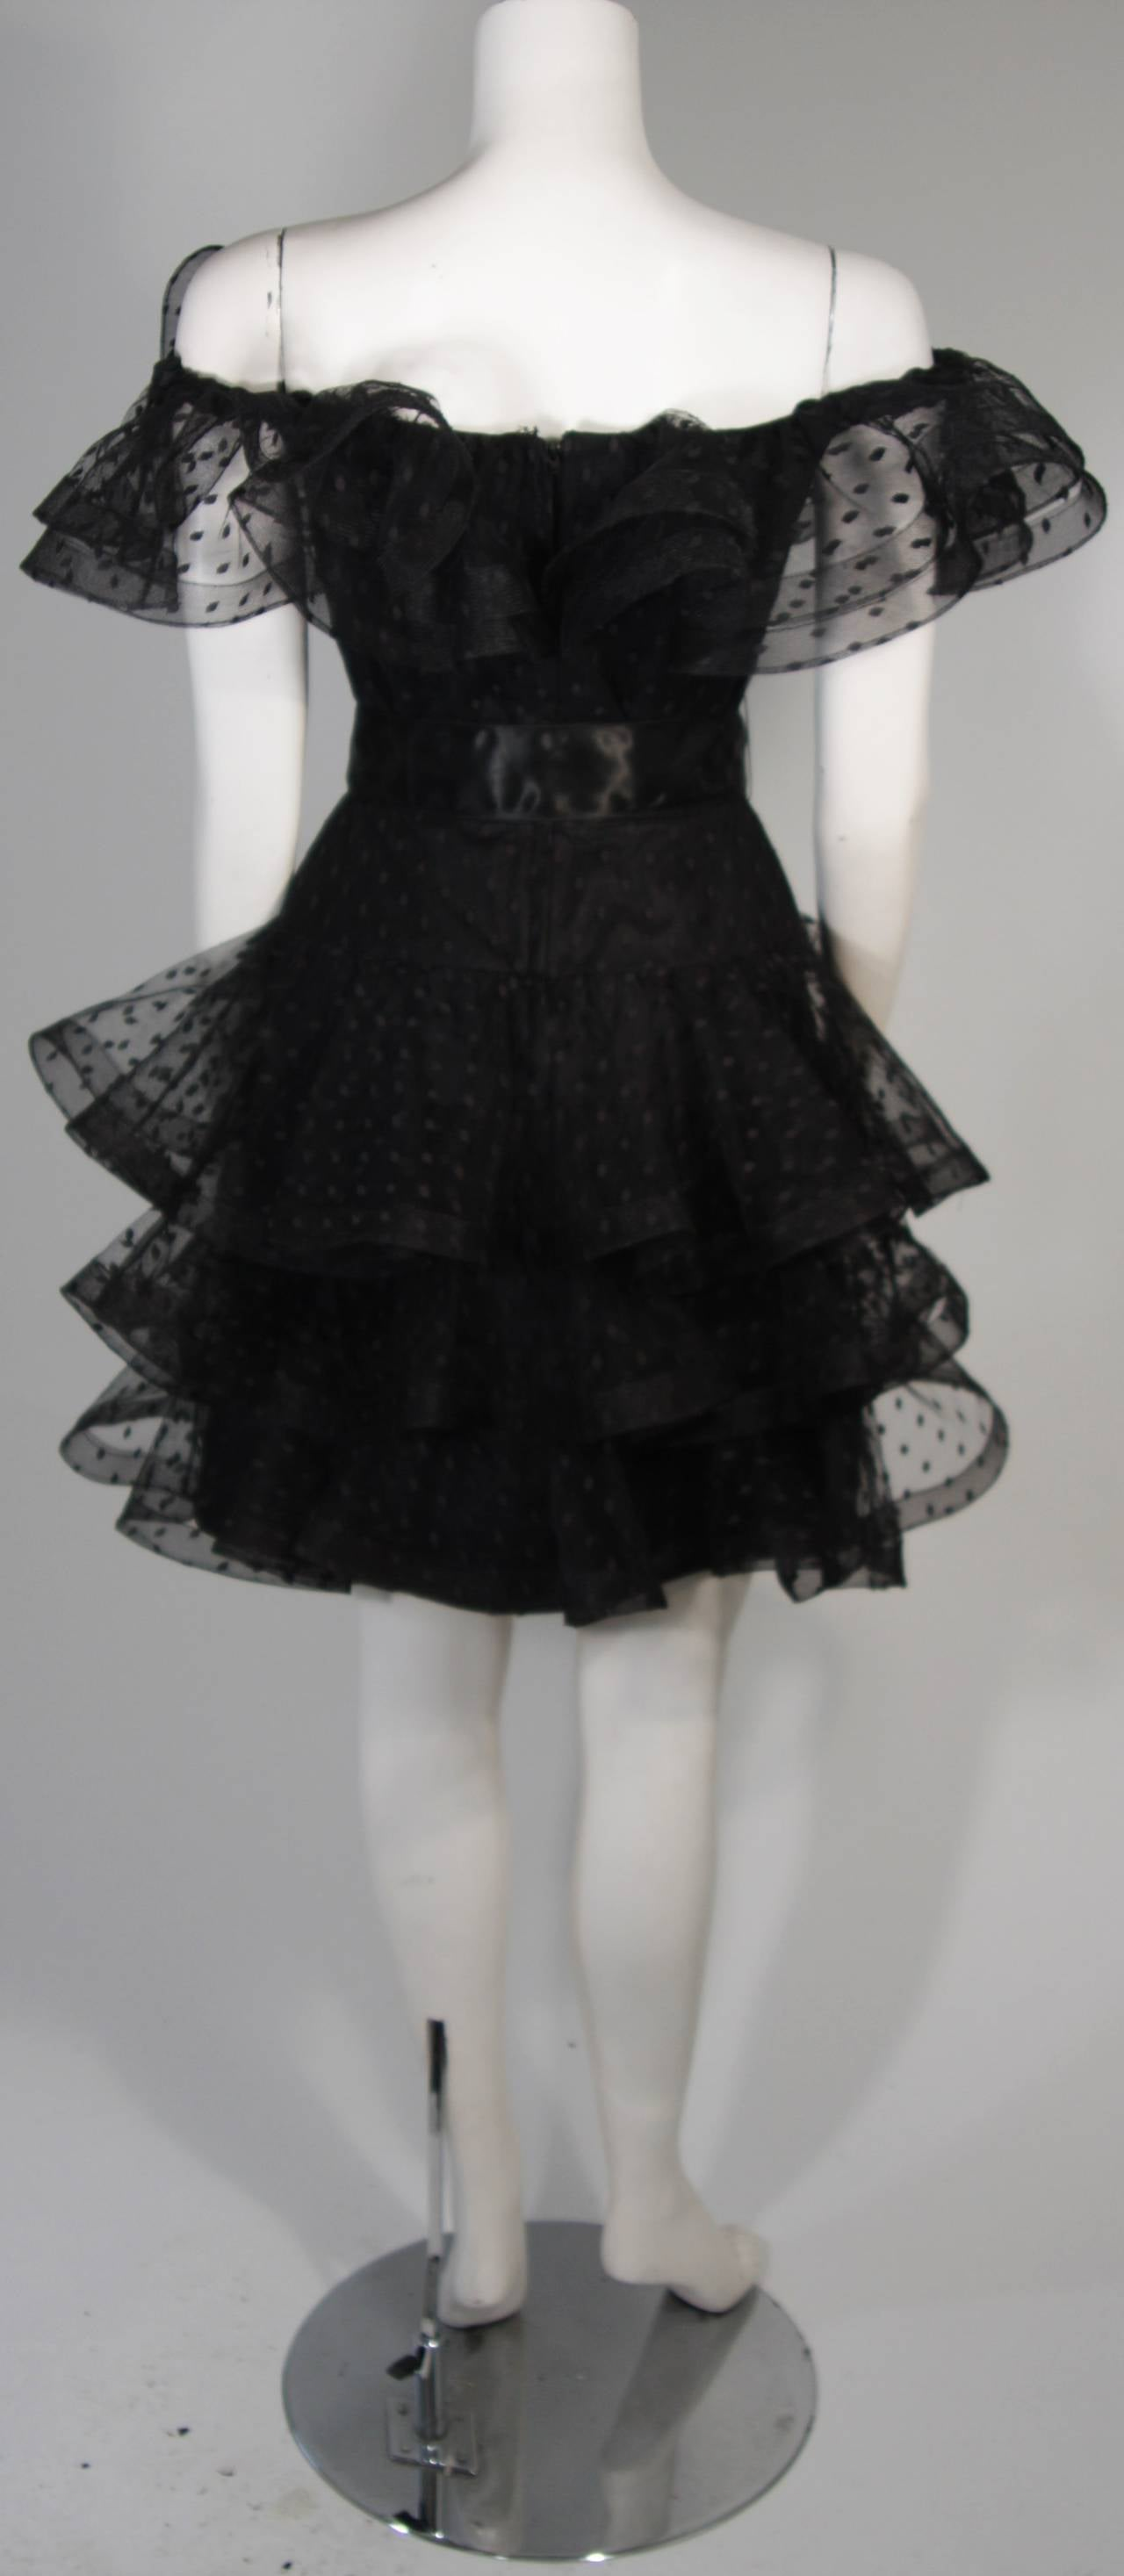 Victor Costa Black Cocktail Dress with Ruffled Horsehair Hemlines Size 2 For Sale 5